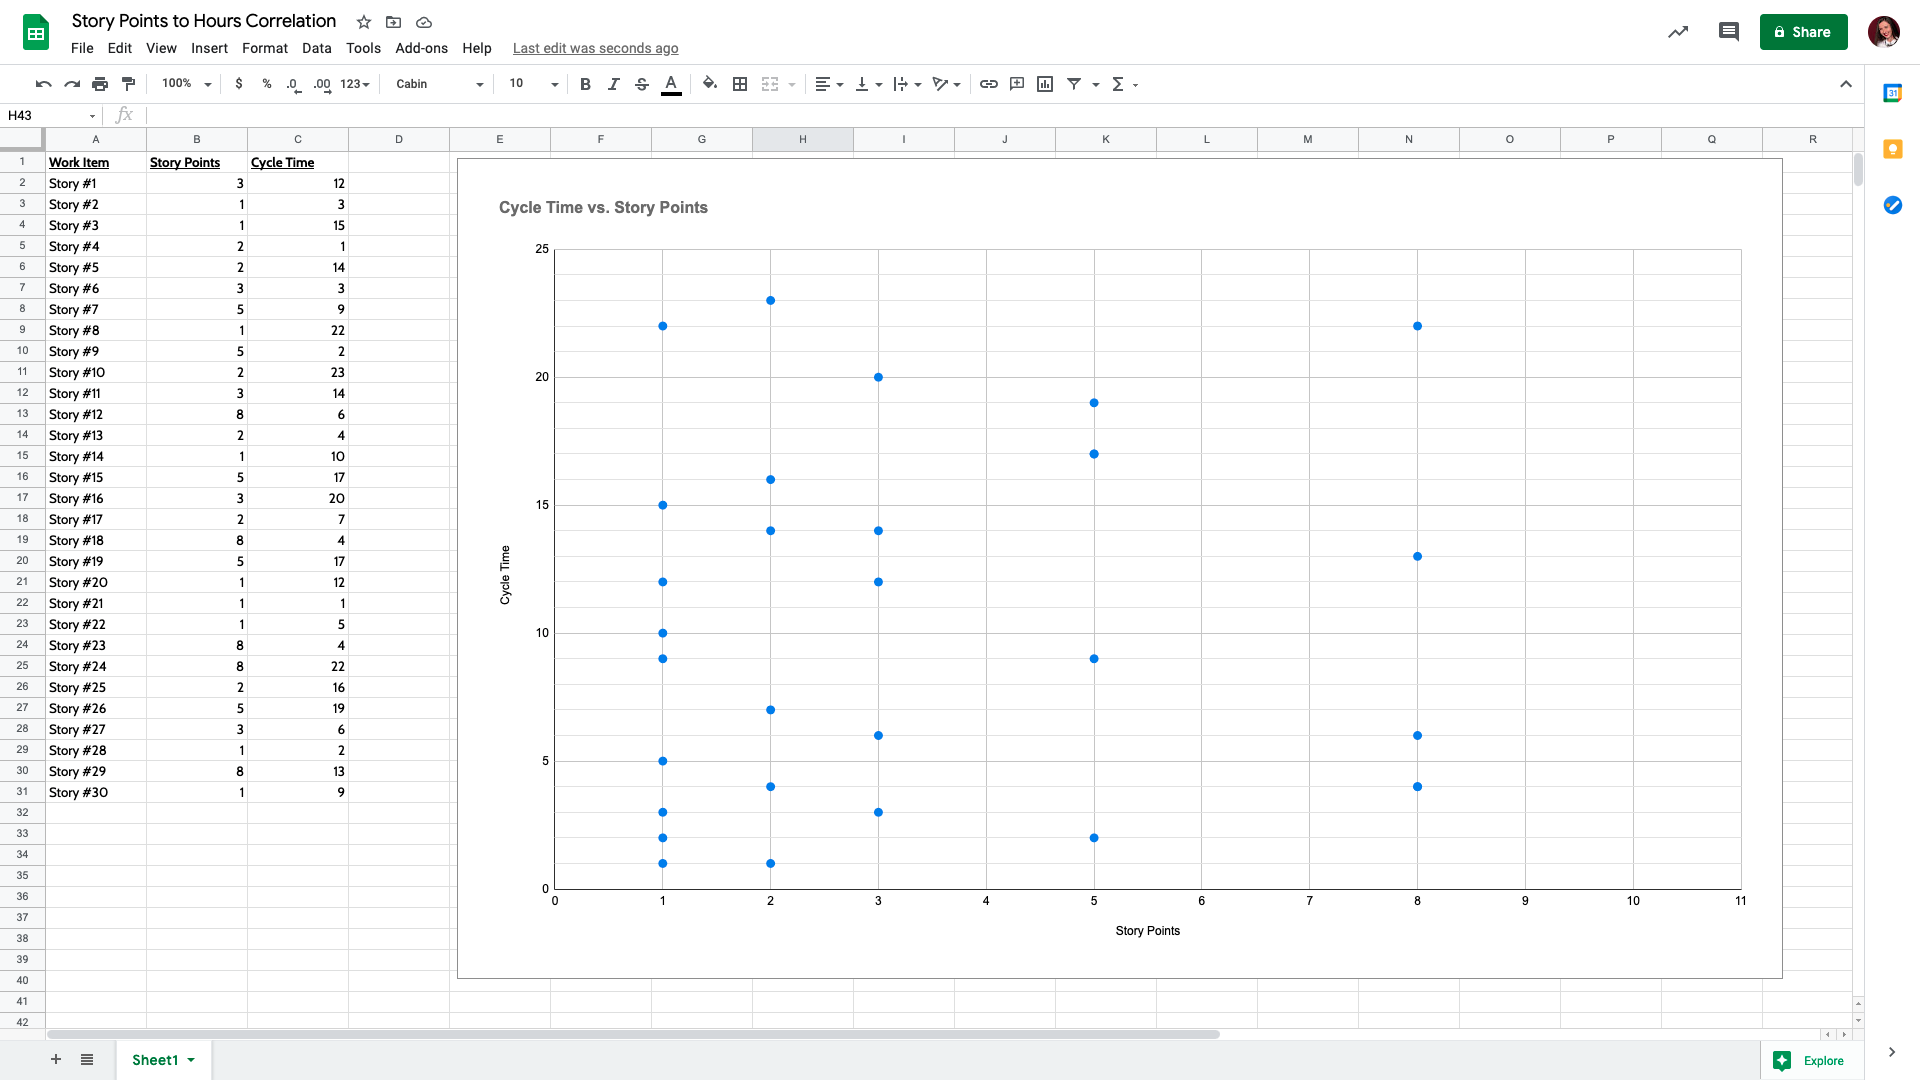 Story points to hours - all data points